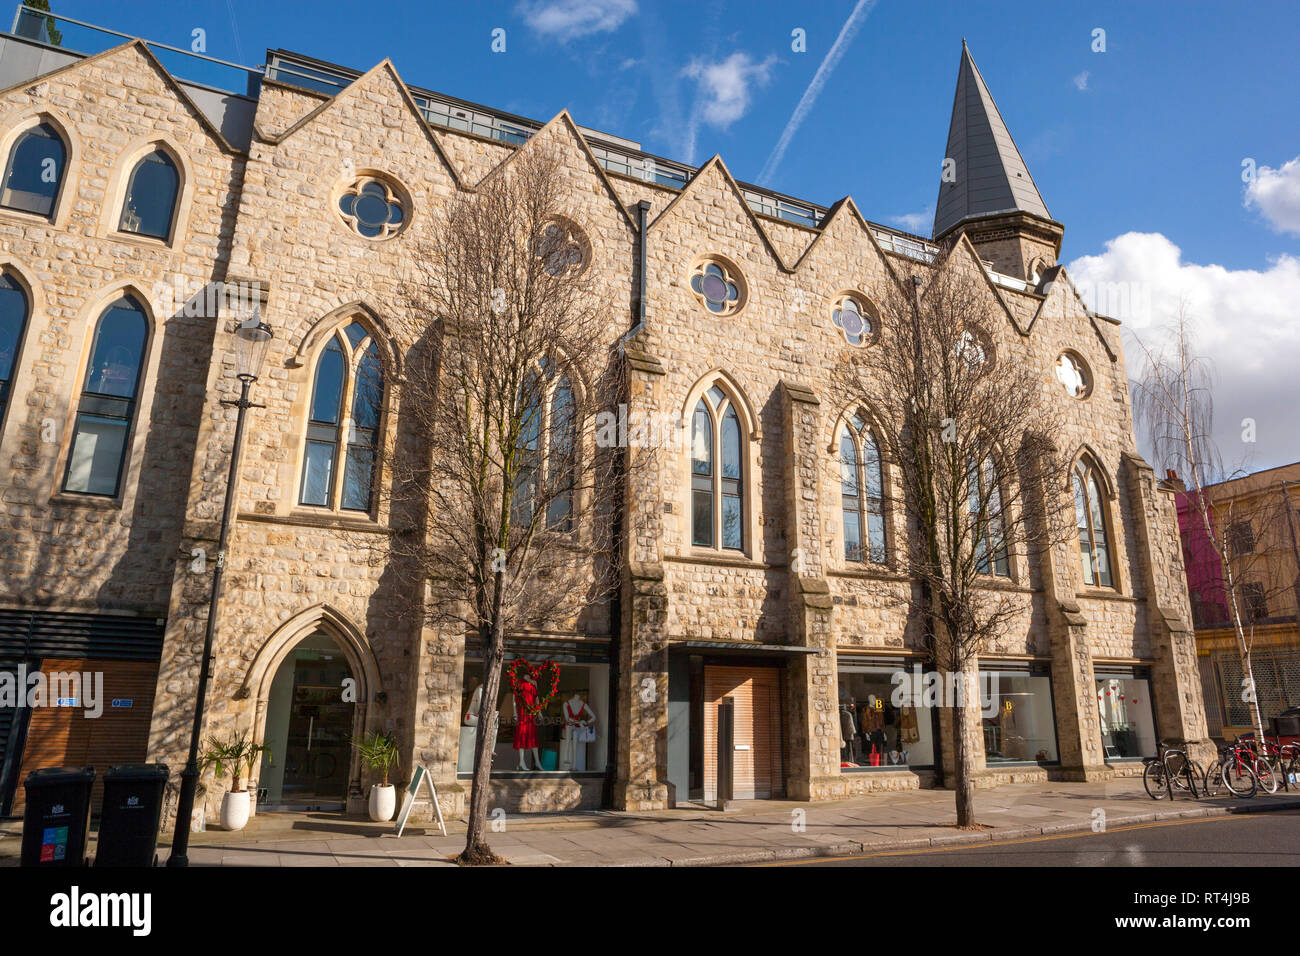 Westbourne Grove Church Retail Units, Ledbury Road, Notting Hill, London - Stock Image